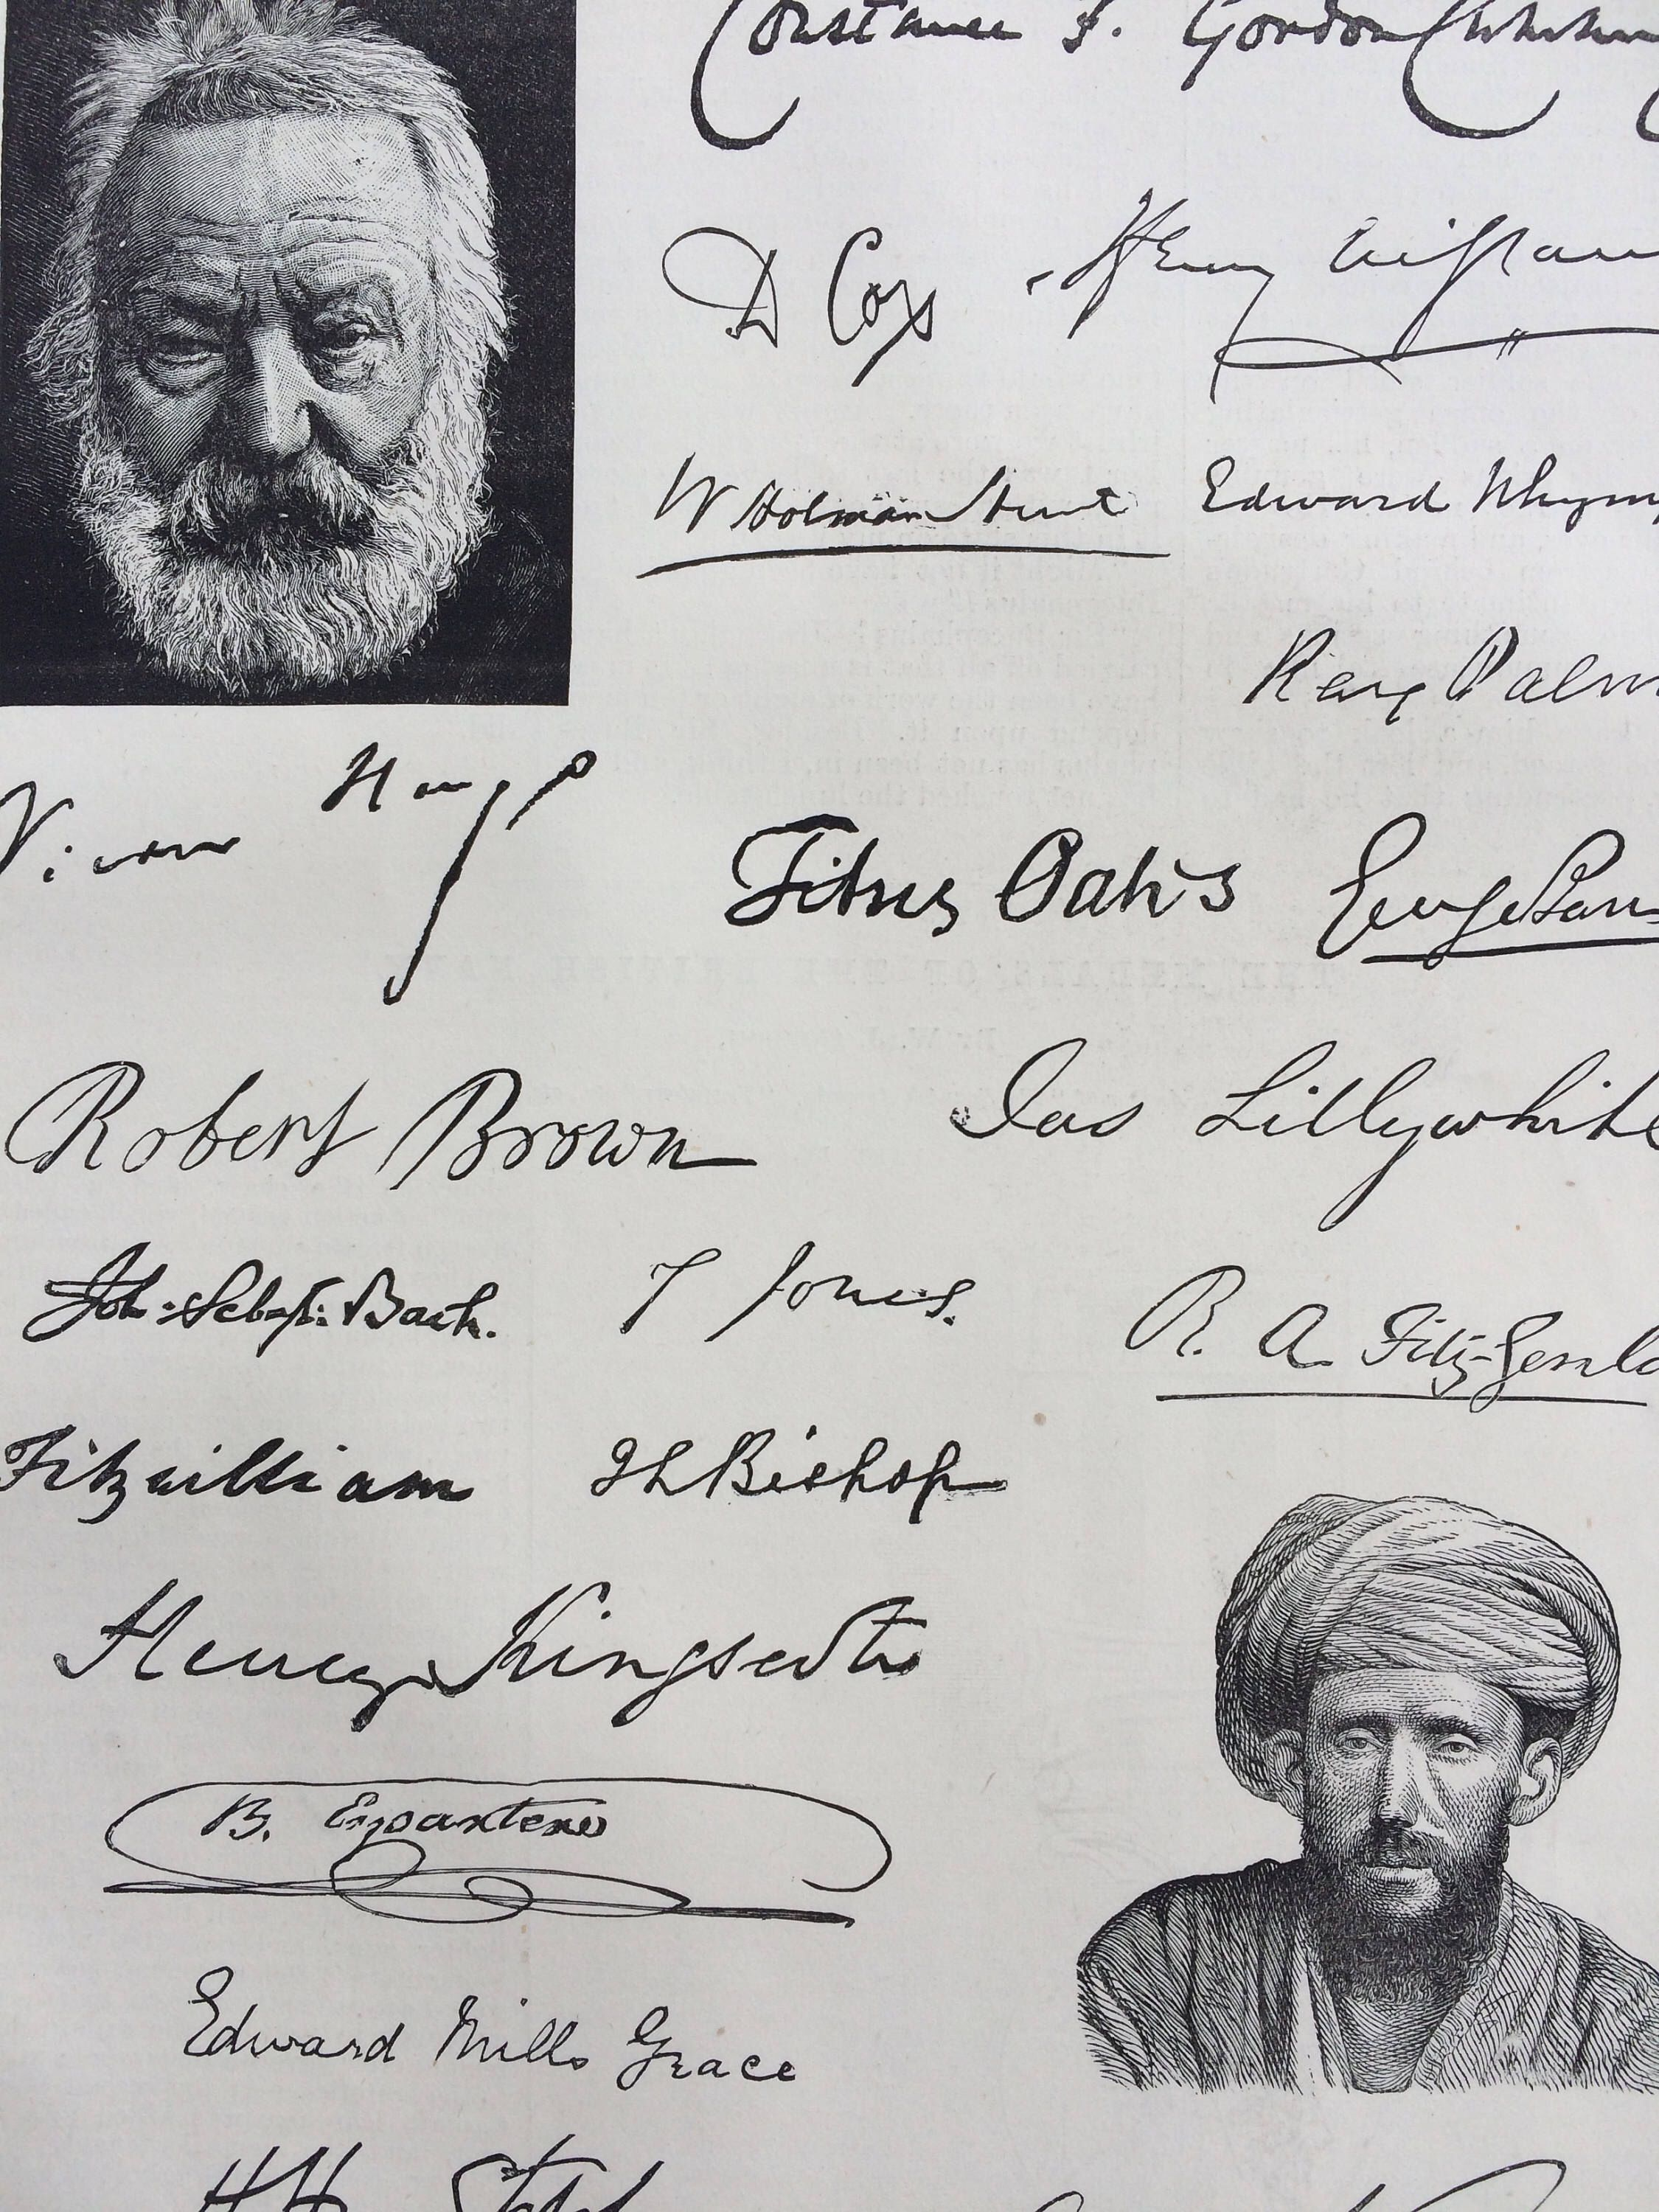 1889 Autographs Original Antique Engraving - Celebrities: Past & Present - matted and available framed - Victorian Decor #modernvictoriandecor